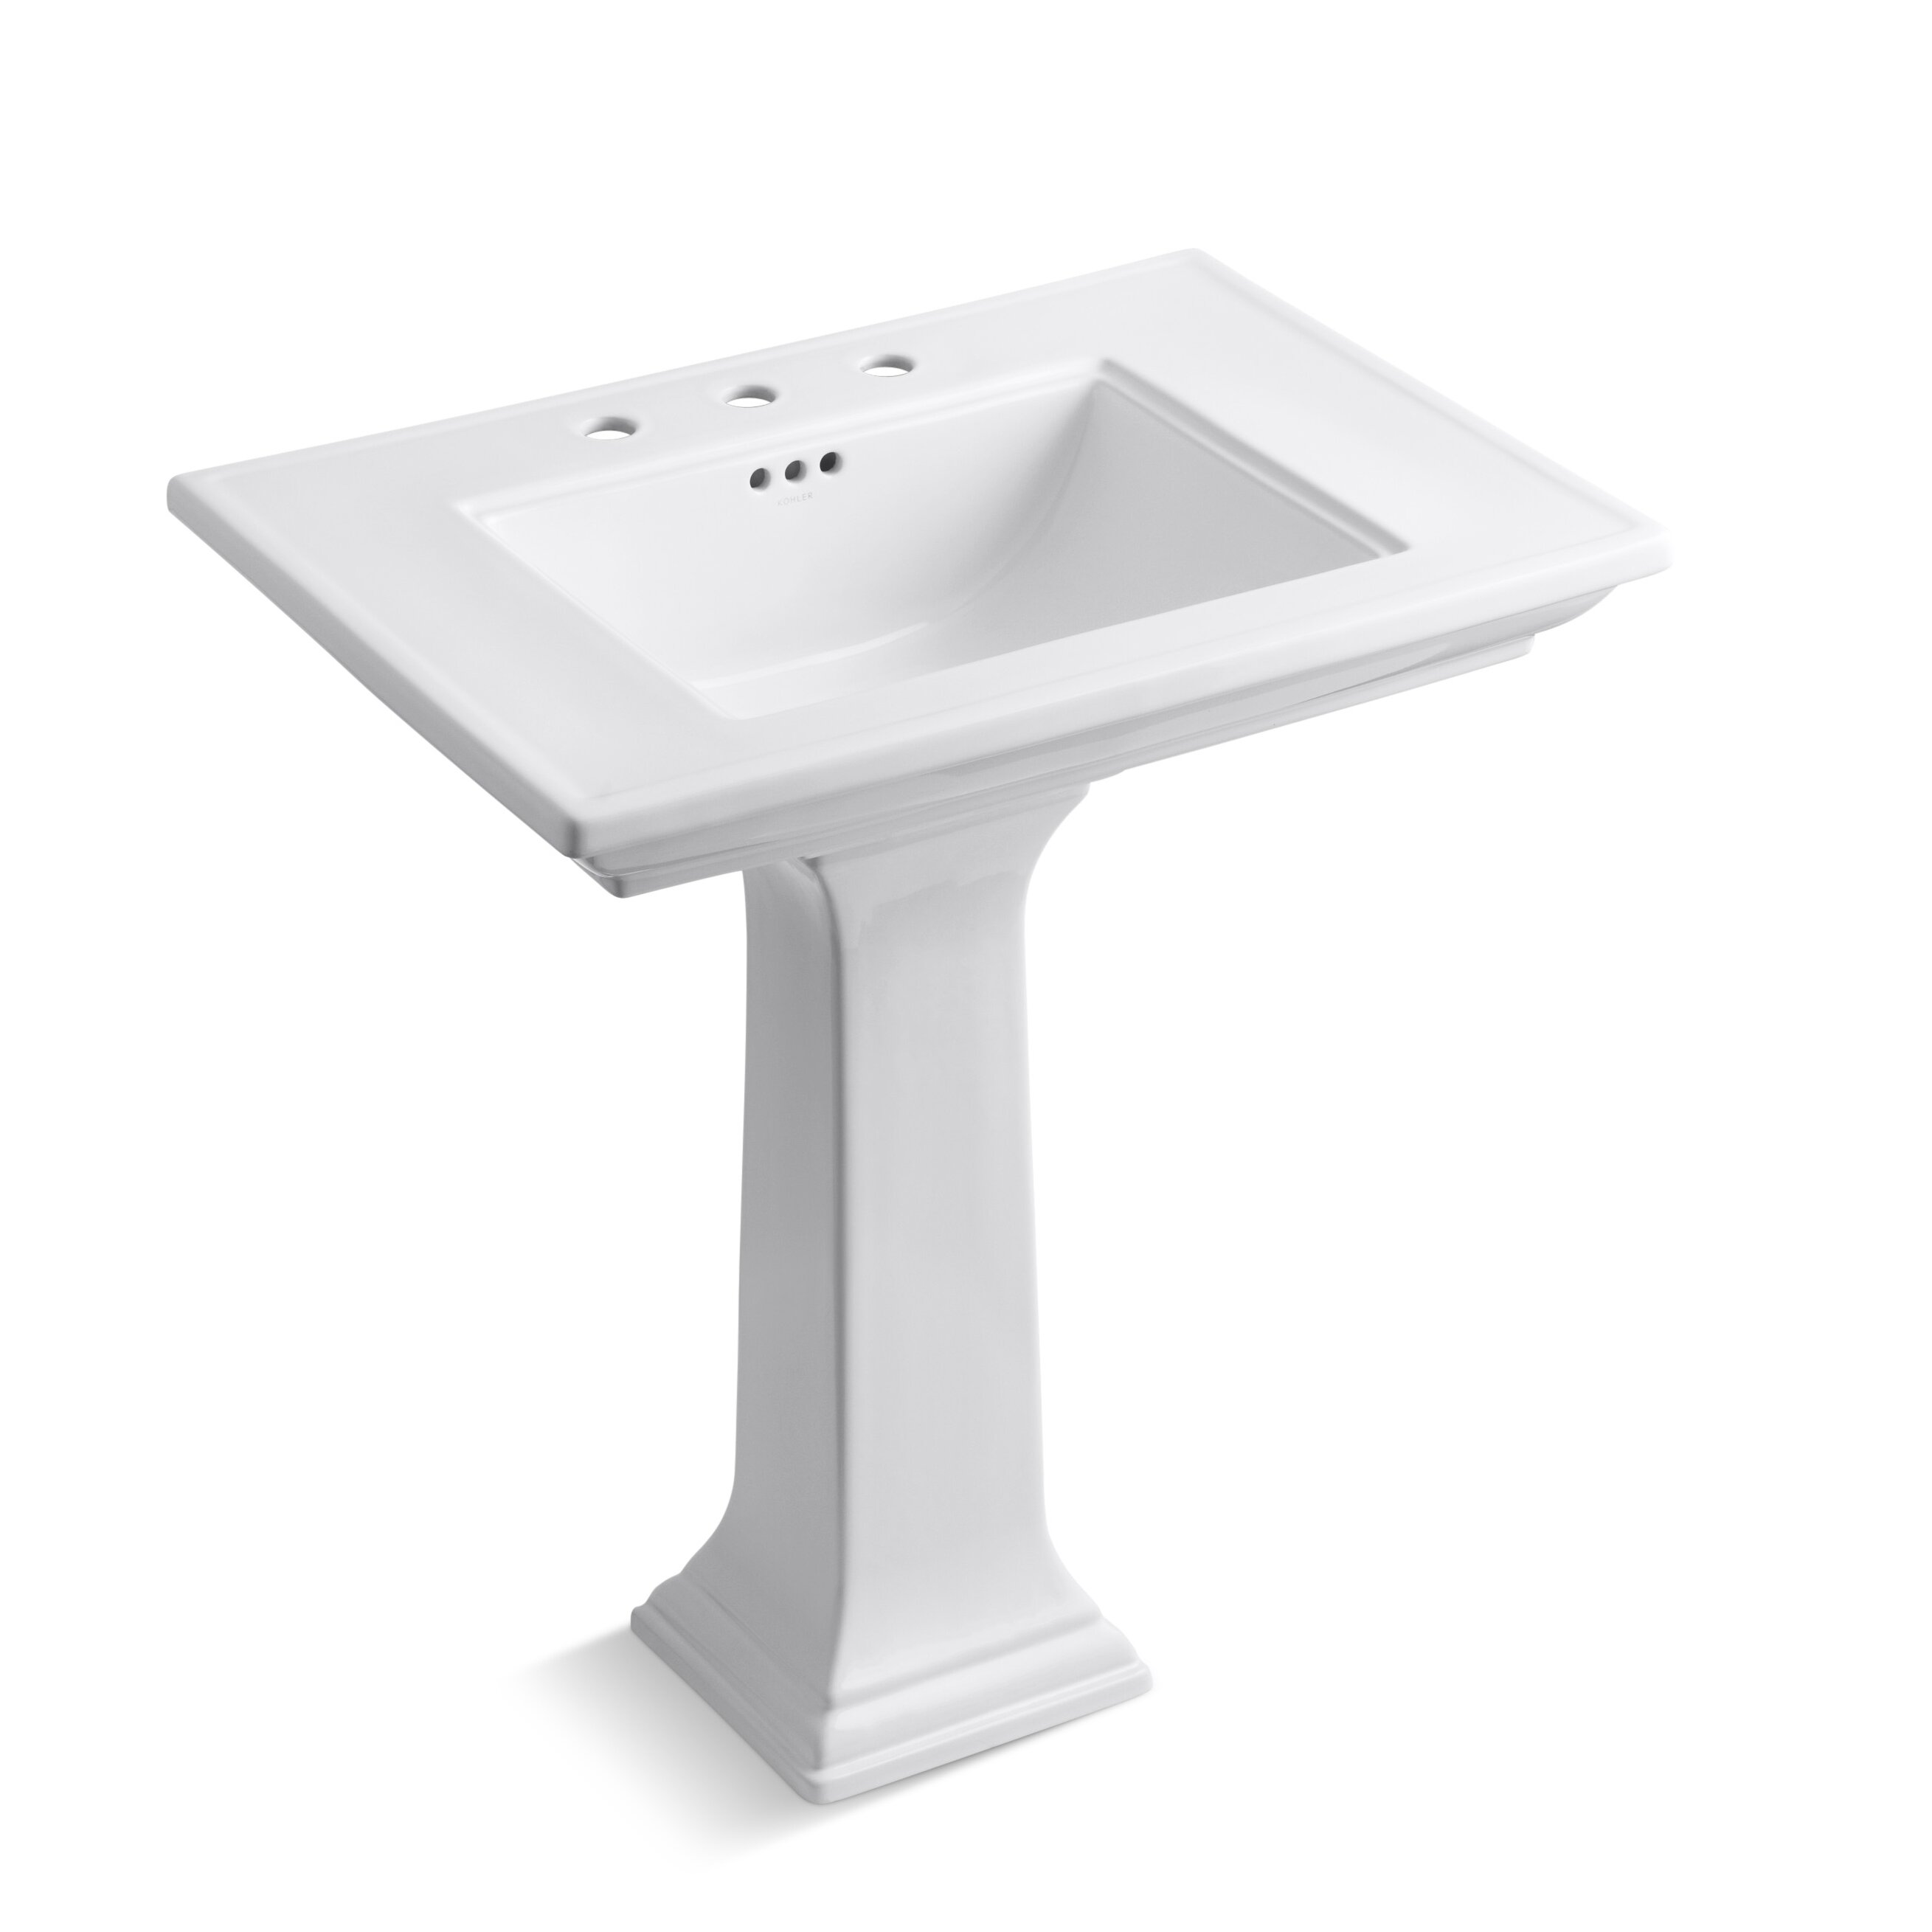 Kohler Memoirs Stately 30 Pedestal Bathroom Sink Reviews Wayfair